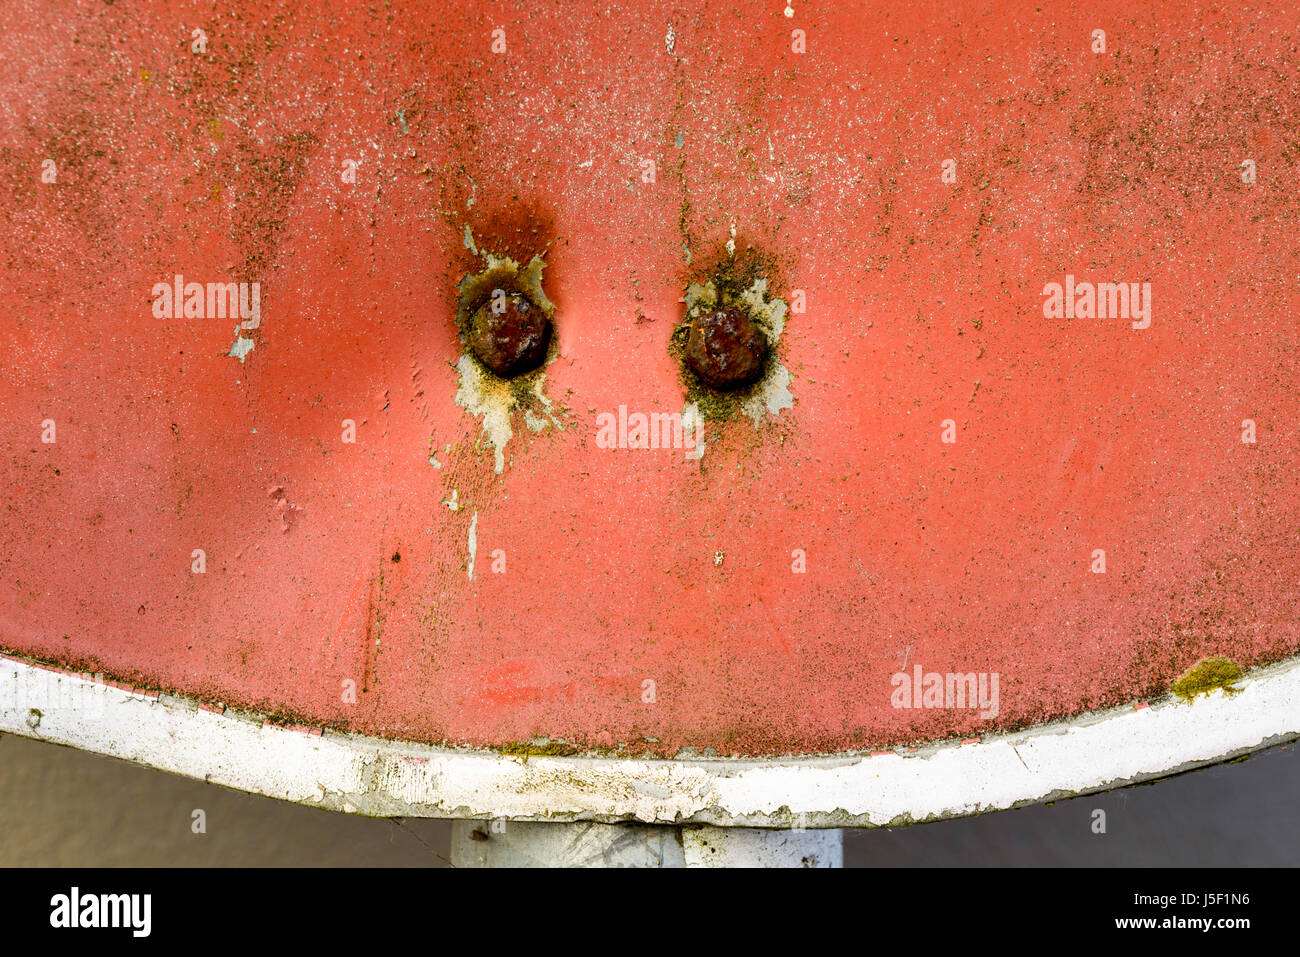 No Entry sign showing signs of fading and damage. Two retaining fastener are heavly corroded. - Stock Image